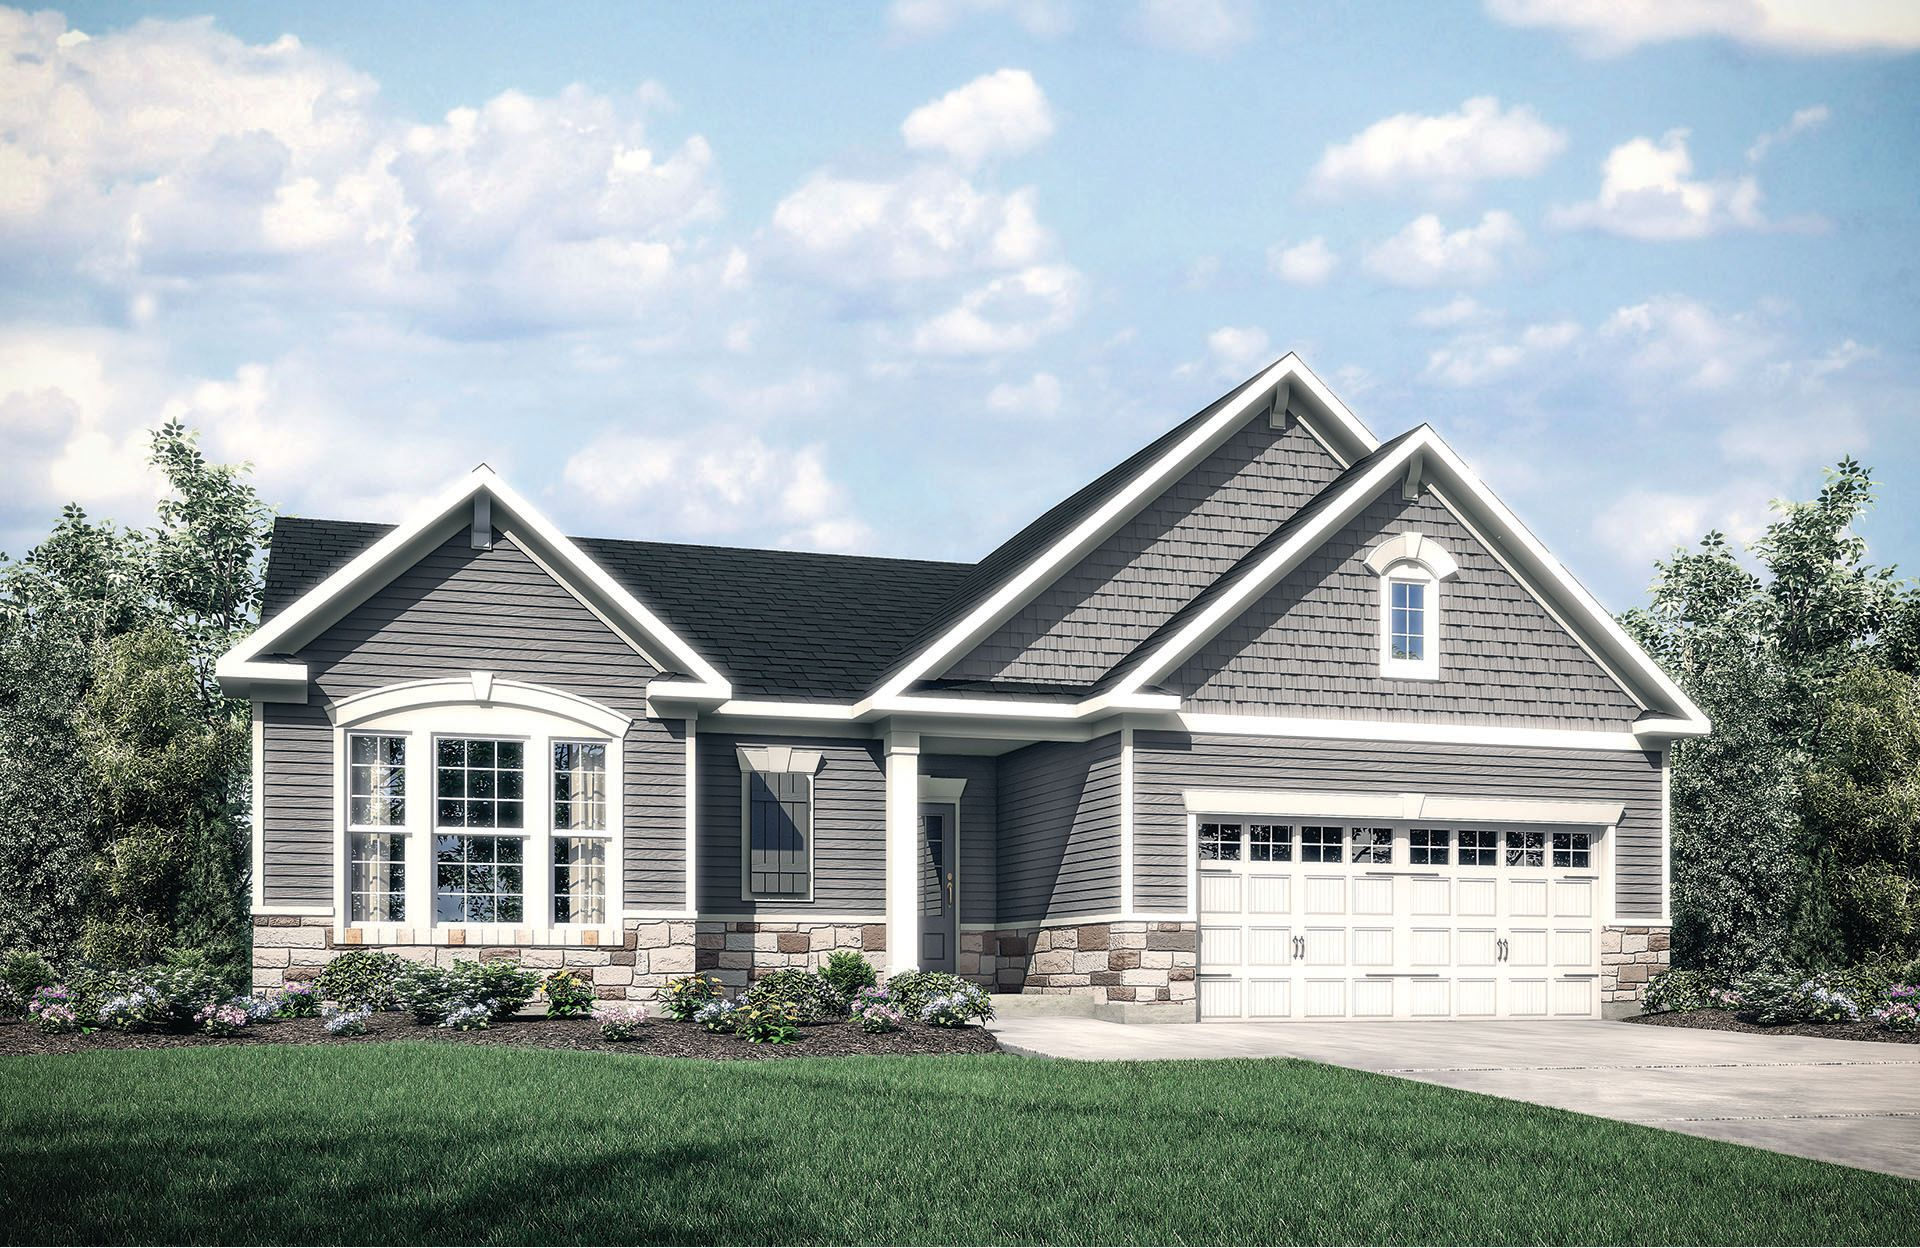 Single Family for Sale at Enclave At South Ridge - Hialeah 3416 Southway Ridge Erlanger, Kentucky 41018 United States